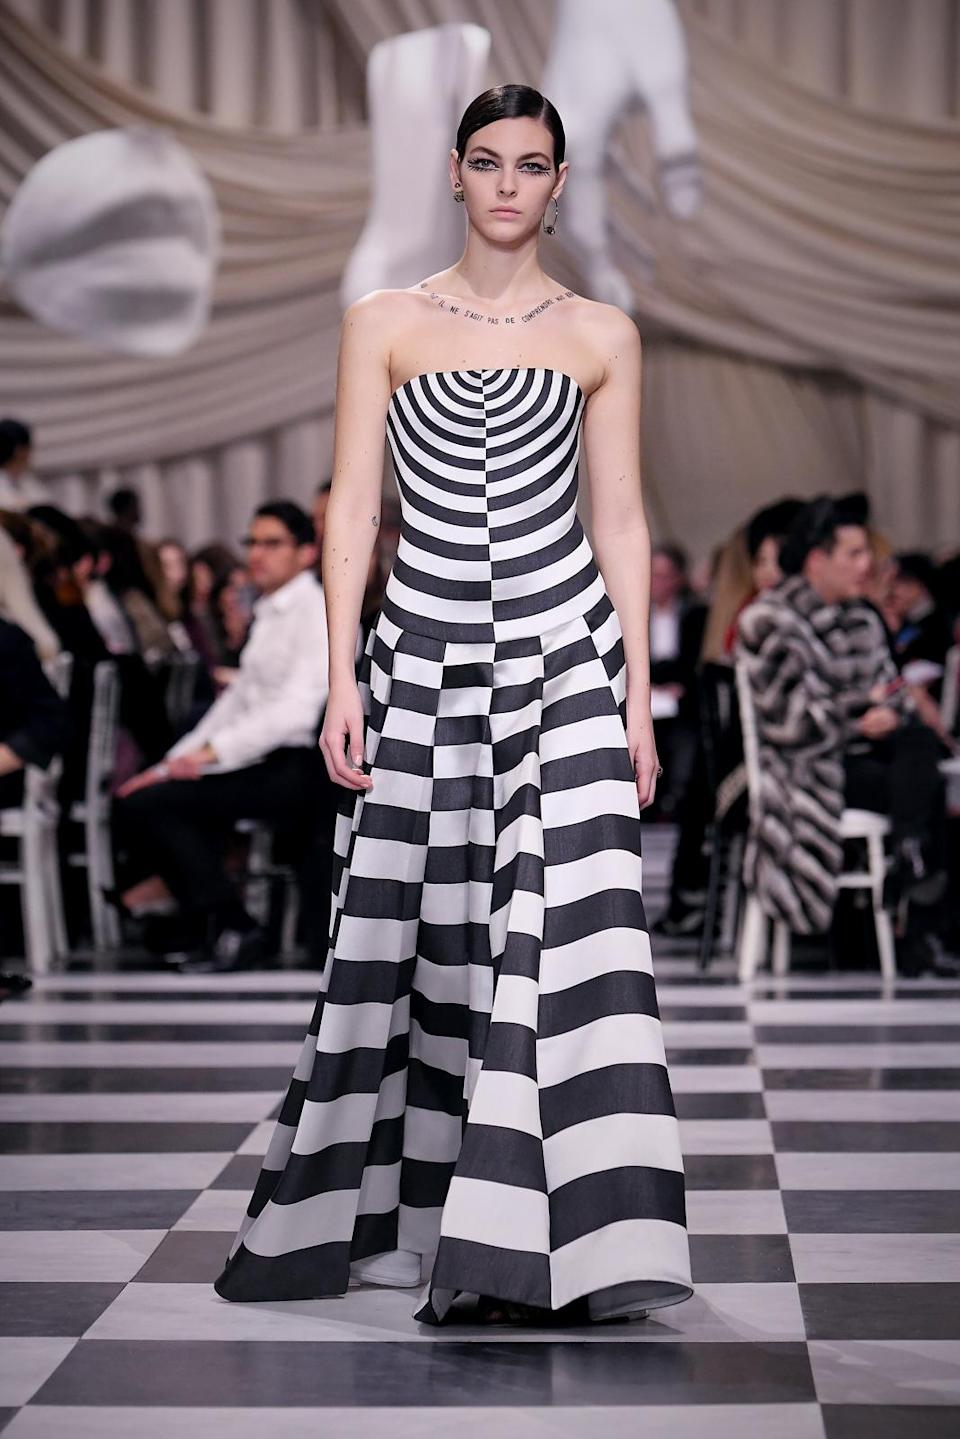 <p>A model wears a strapless mismatched black and white checkered and bull's-eye patterned dress from the Dior Haute Couture SS18 collection. (Photo: Getty) </p>